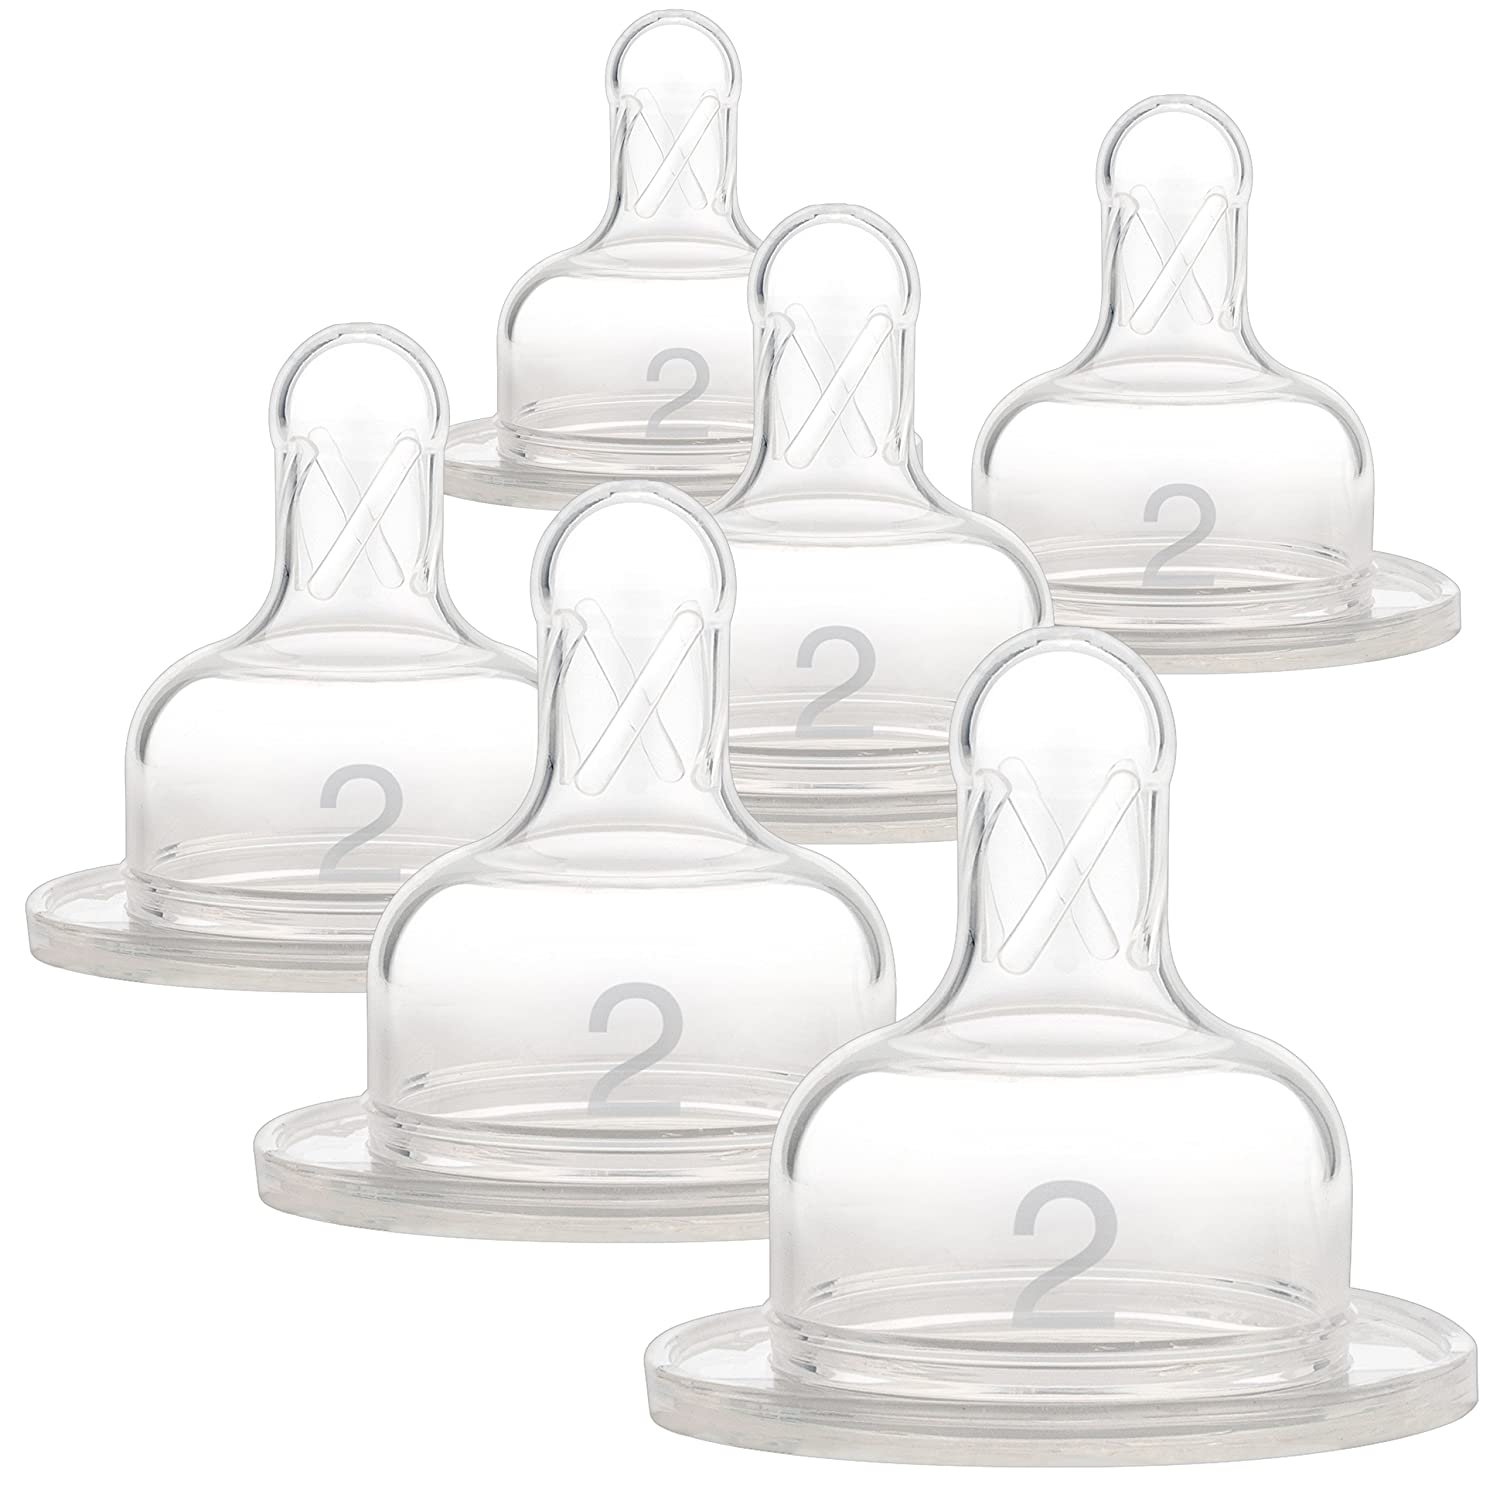 Dr. Brown's Original Wide-Neck Nipple, Y-Cut (9m+), 6-pack, Clear Handi-craft Company WN561-WEB